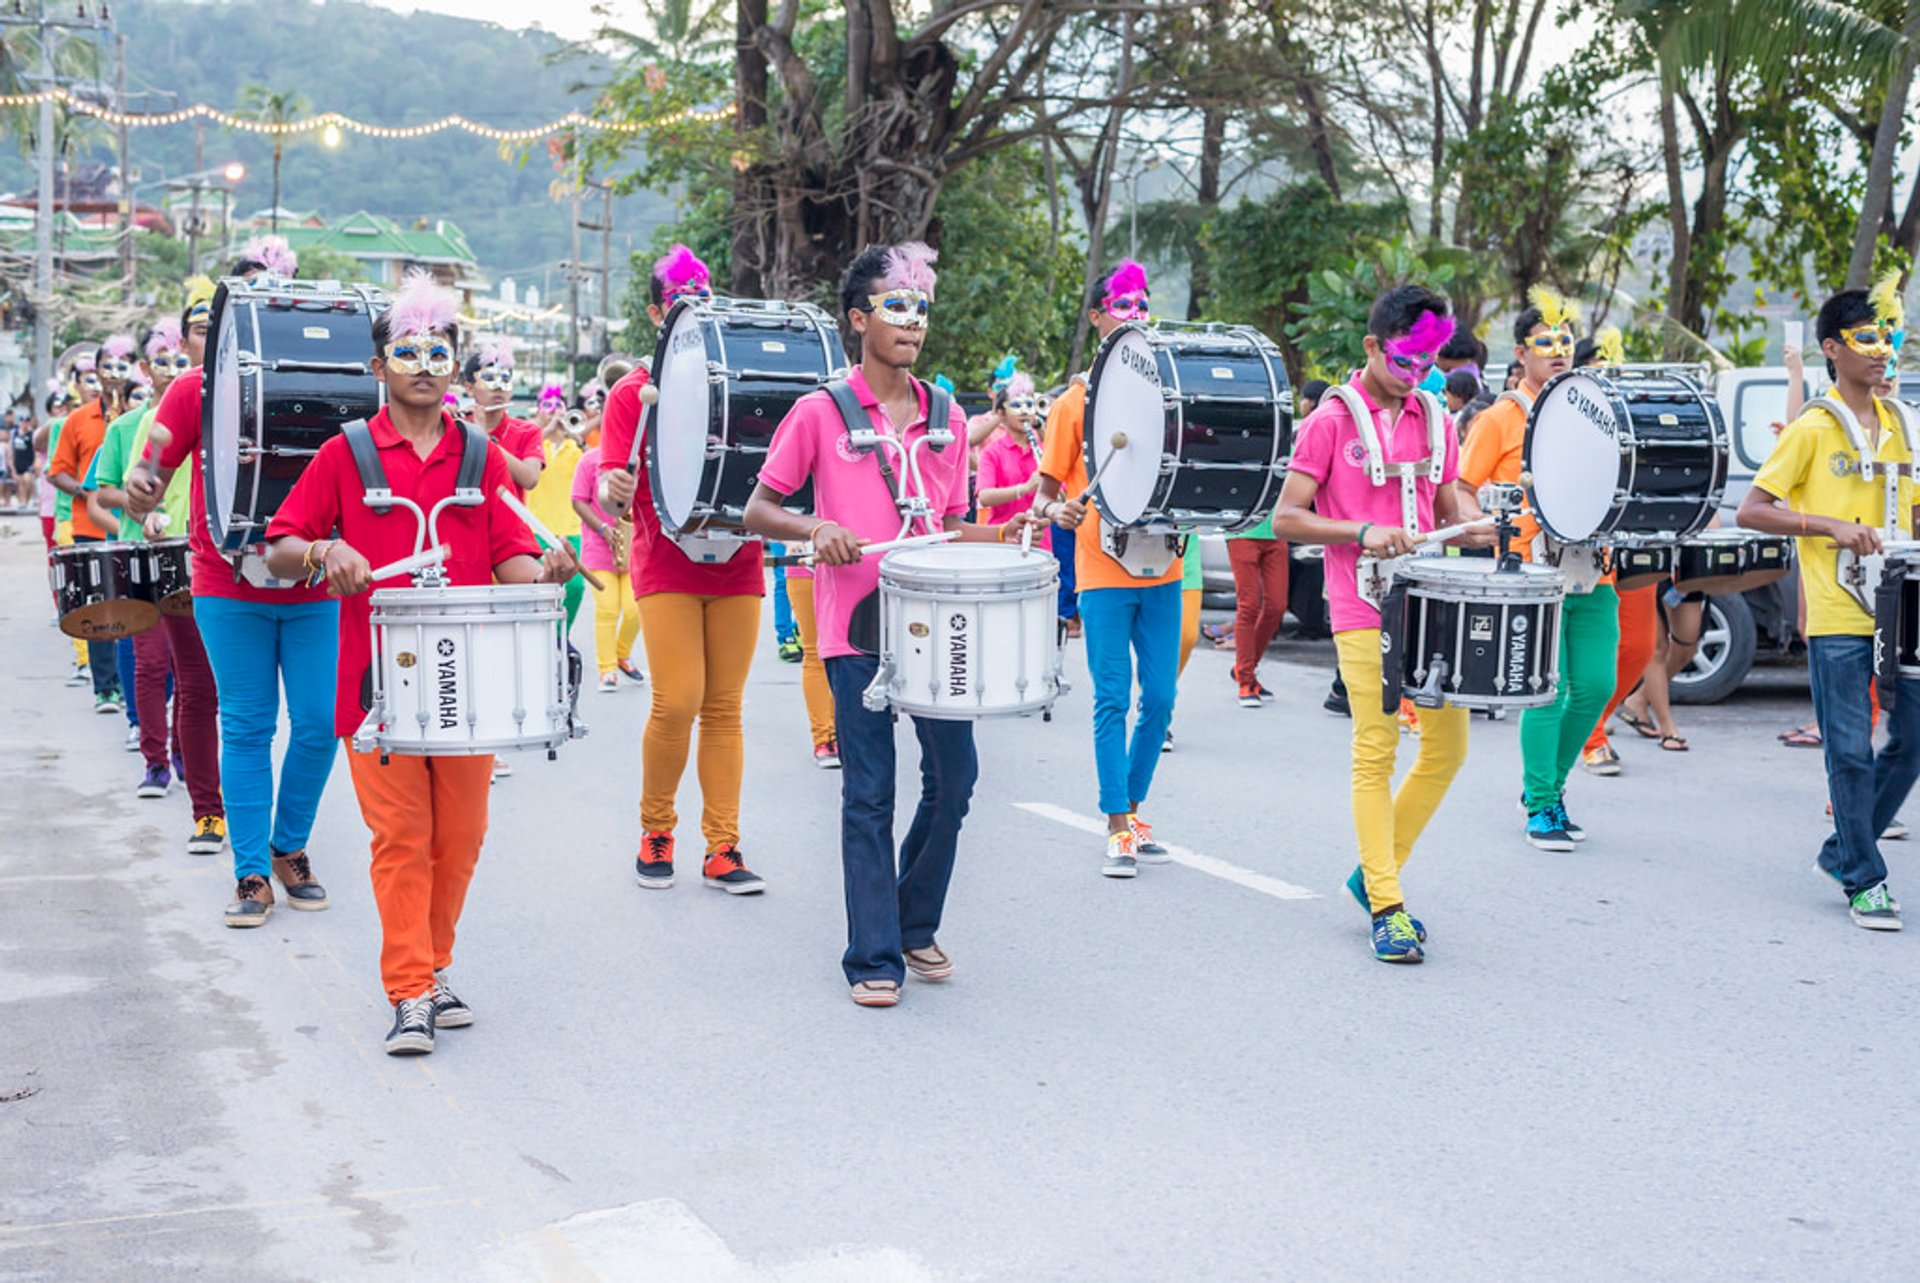 Patong Carnival in Phuket - Best Season 2020